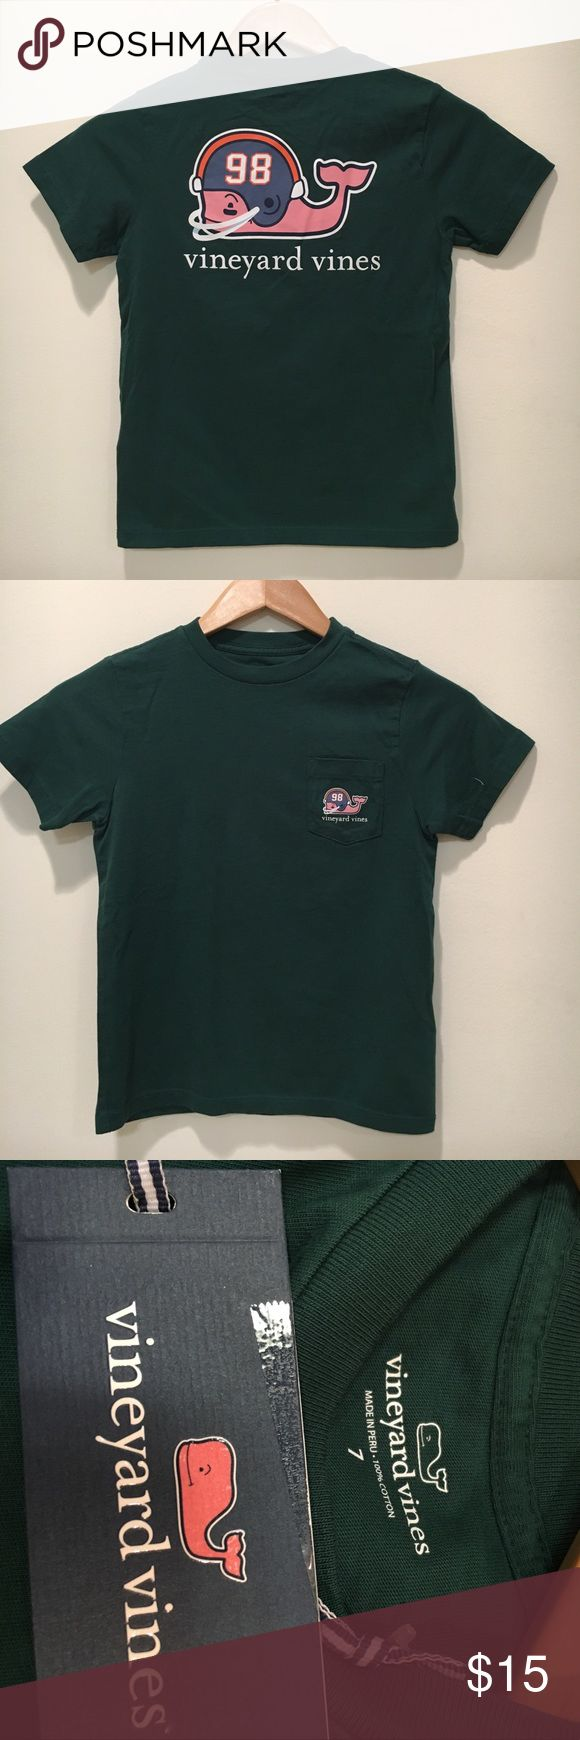 Vineyard Vines NWT Boys Size 7 T-Shirt. Price Firm Green Size 7 NWT adorable short sleeve t-shirt Vineyard Vines Shirts & Tops Tees - Short Sleeve